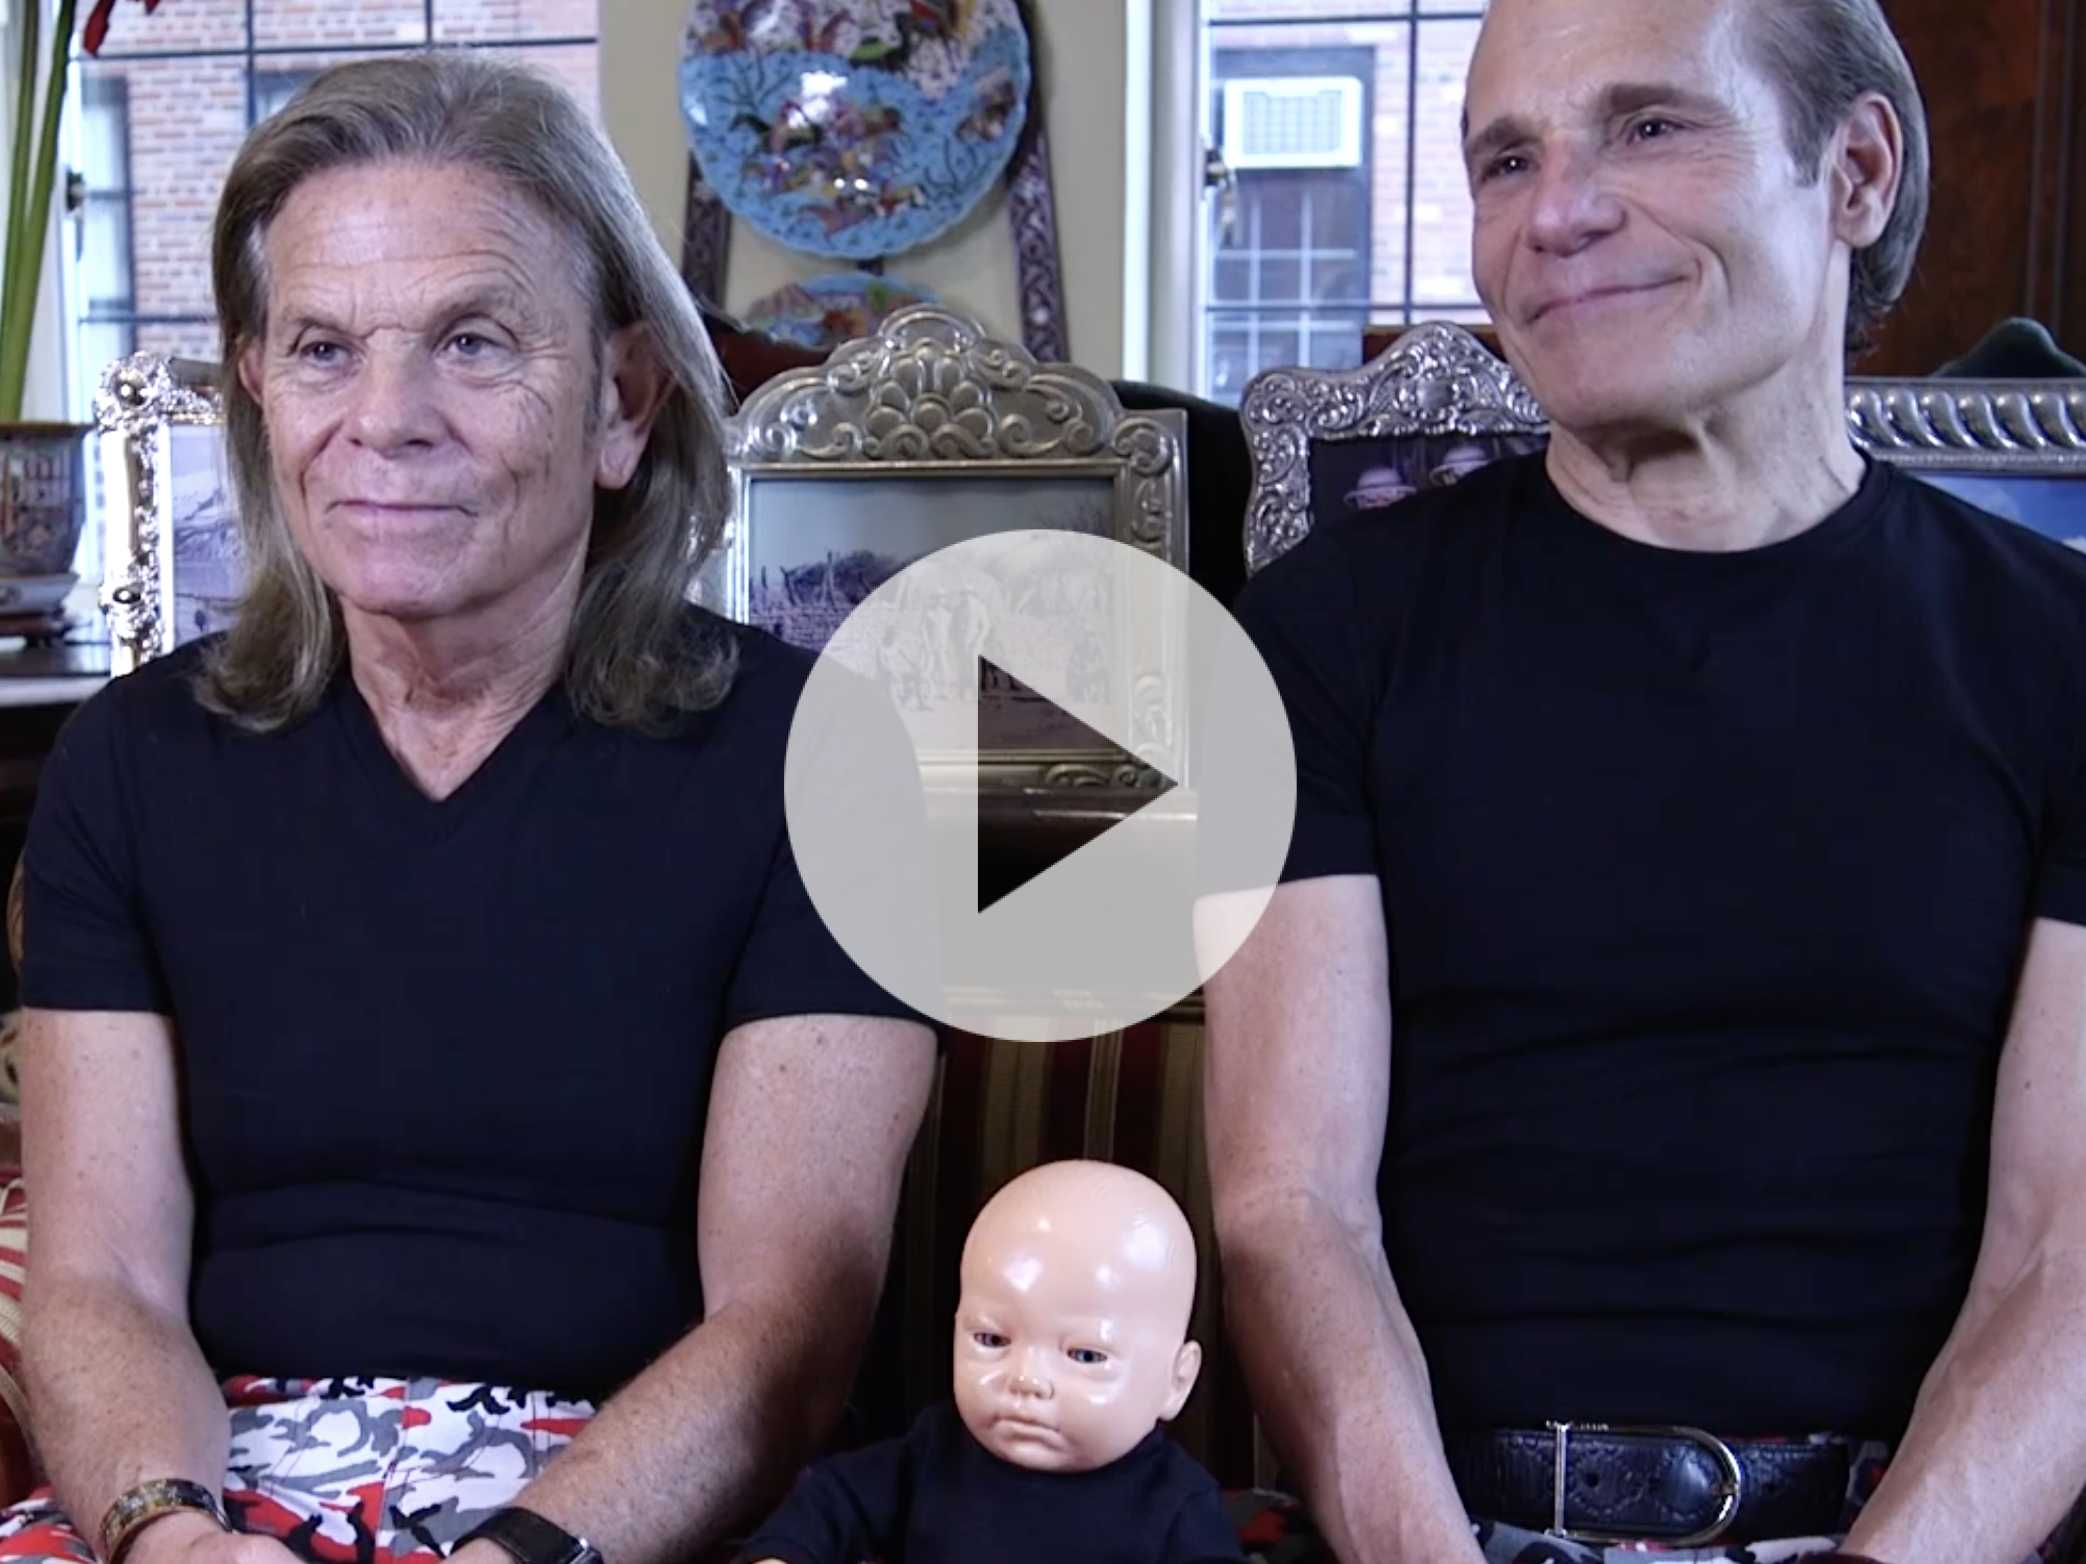 Watch: For Nearly 30 Years, Gay Couple Raises Plastic Doll as Their Own Child